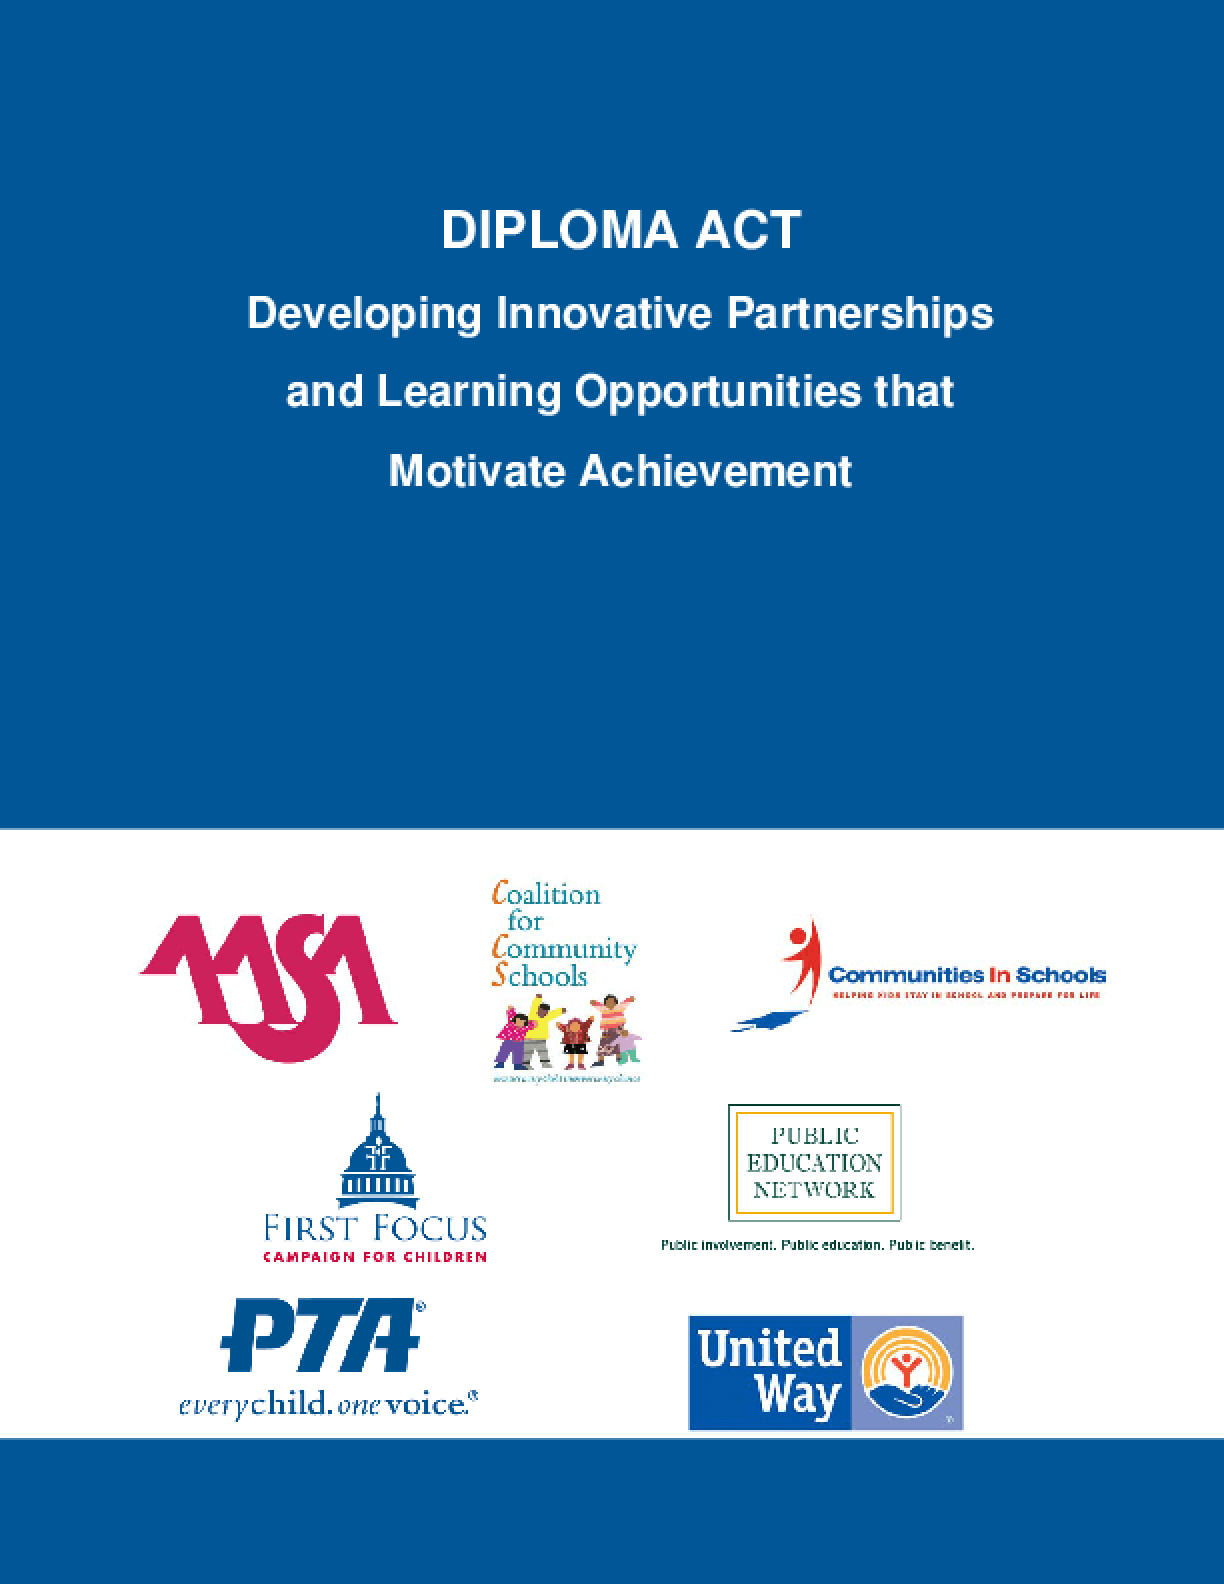 Diploma Act: Developing Innovative Partnerships and Learning Opportunities that Motivate Achievement